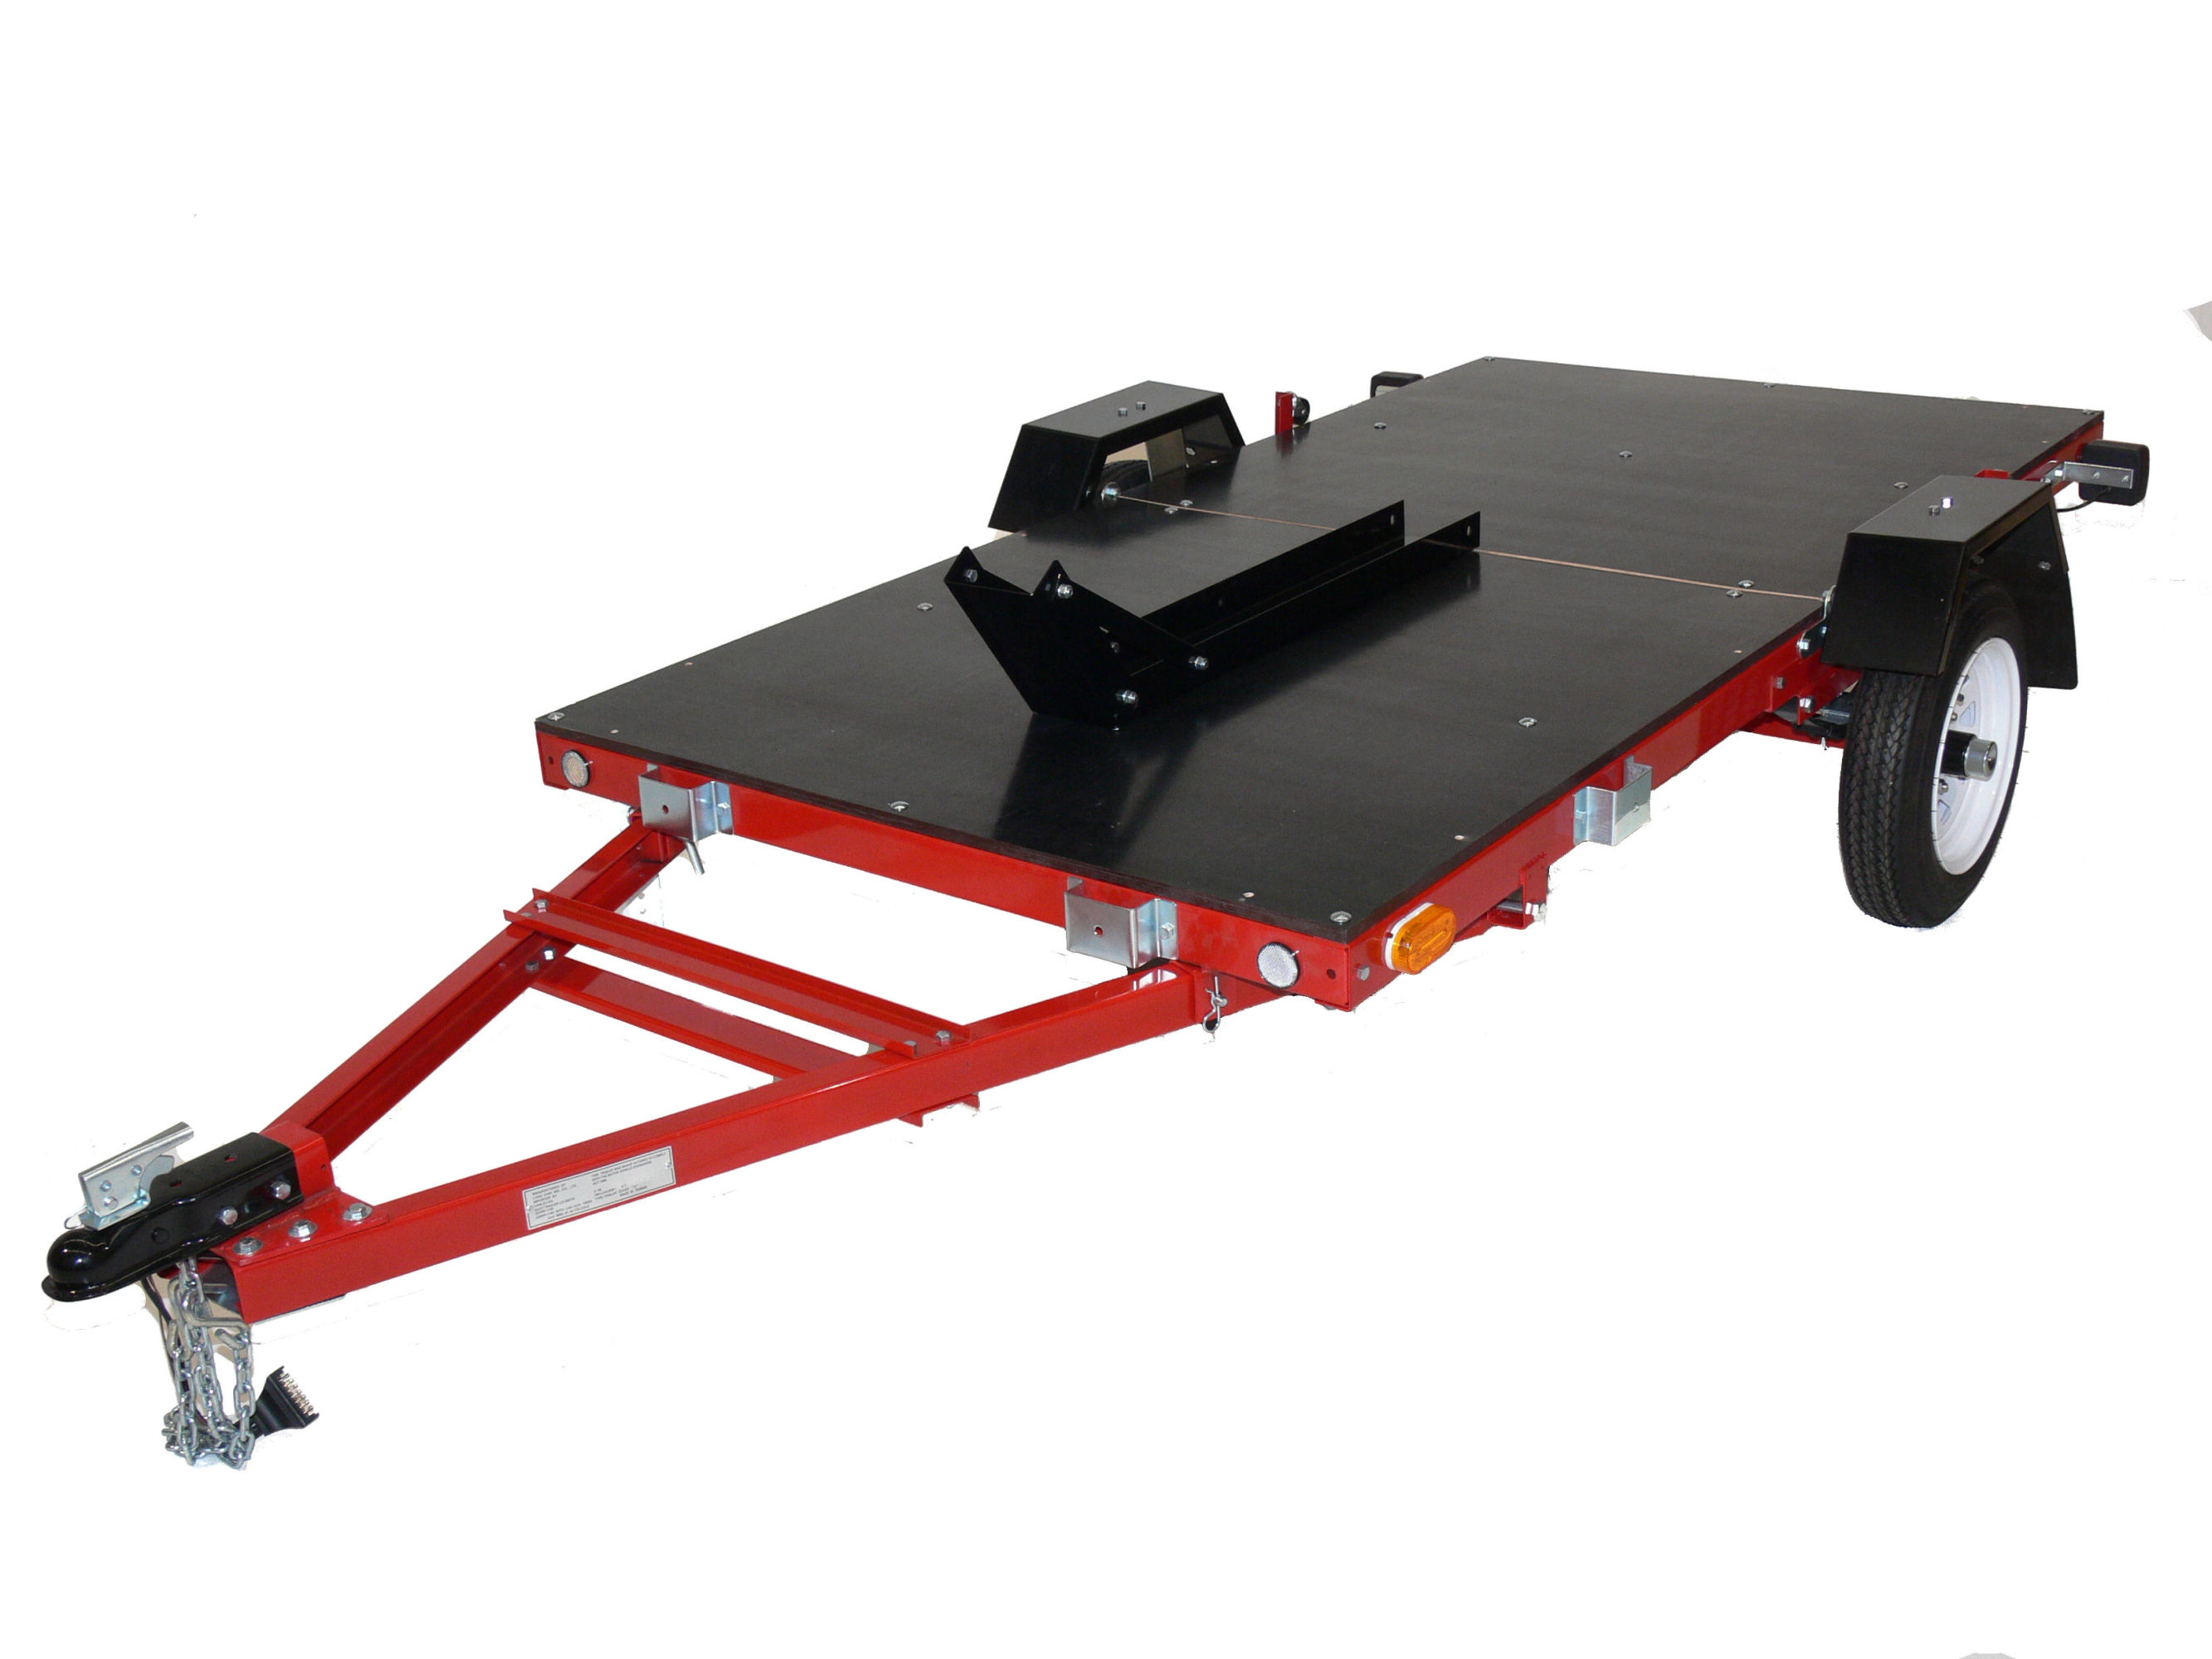 Foldable Motorcycle Trailers Fold Up Motorbike Trailers